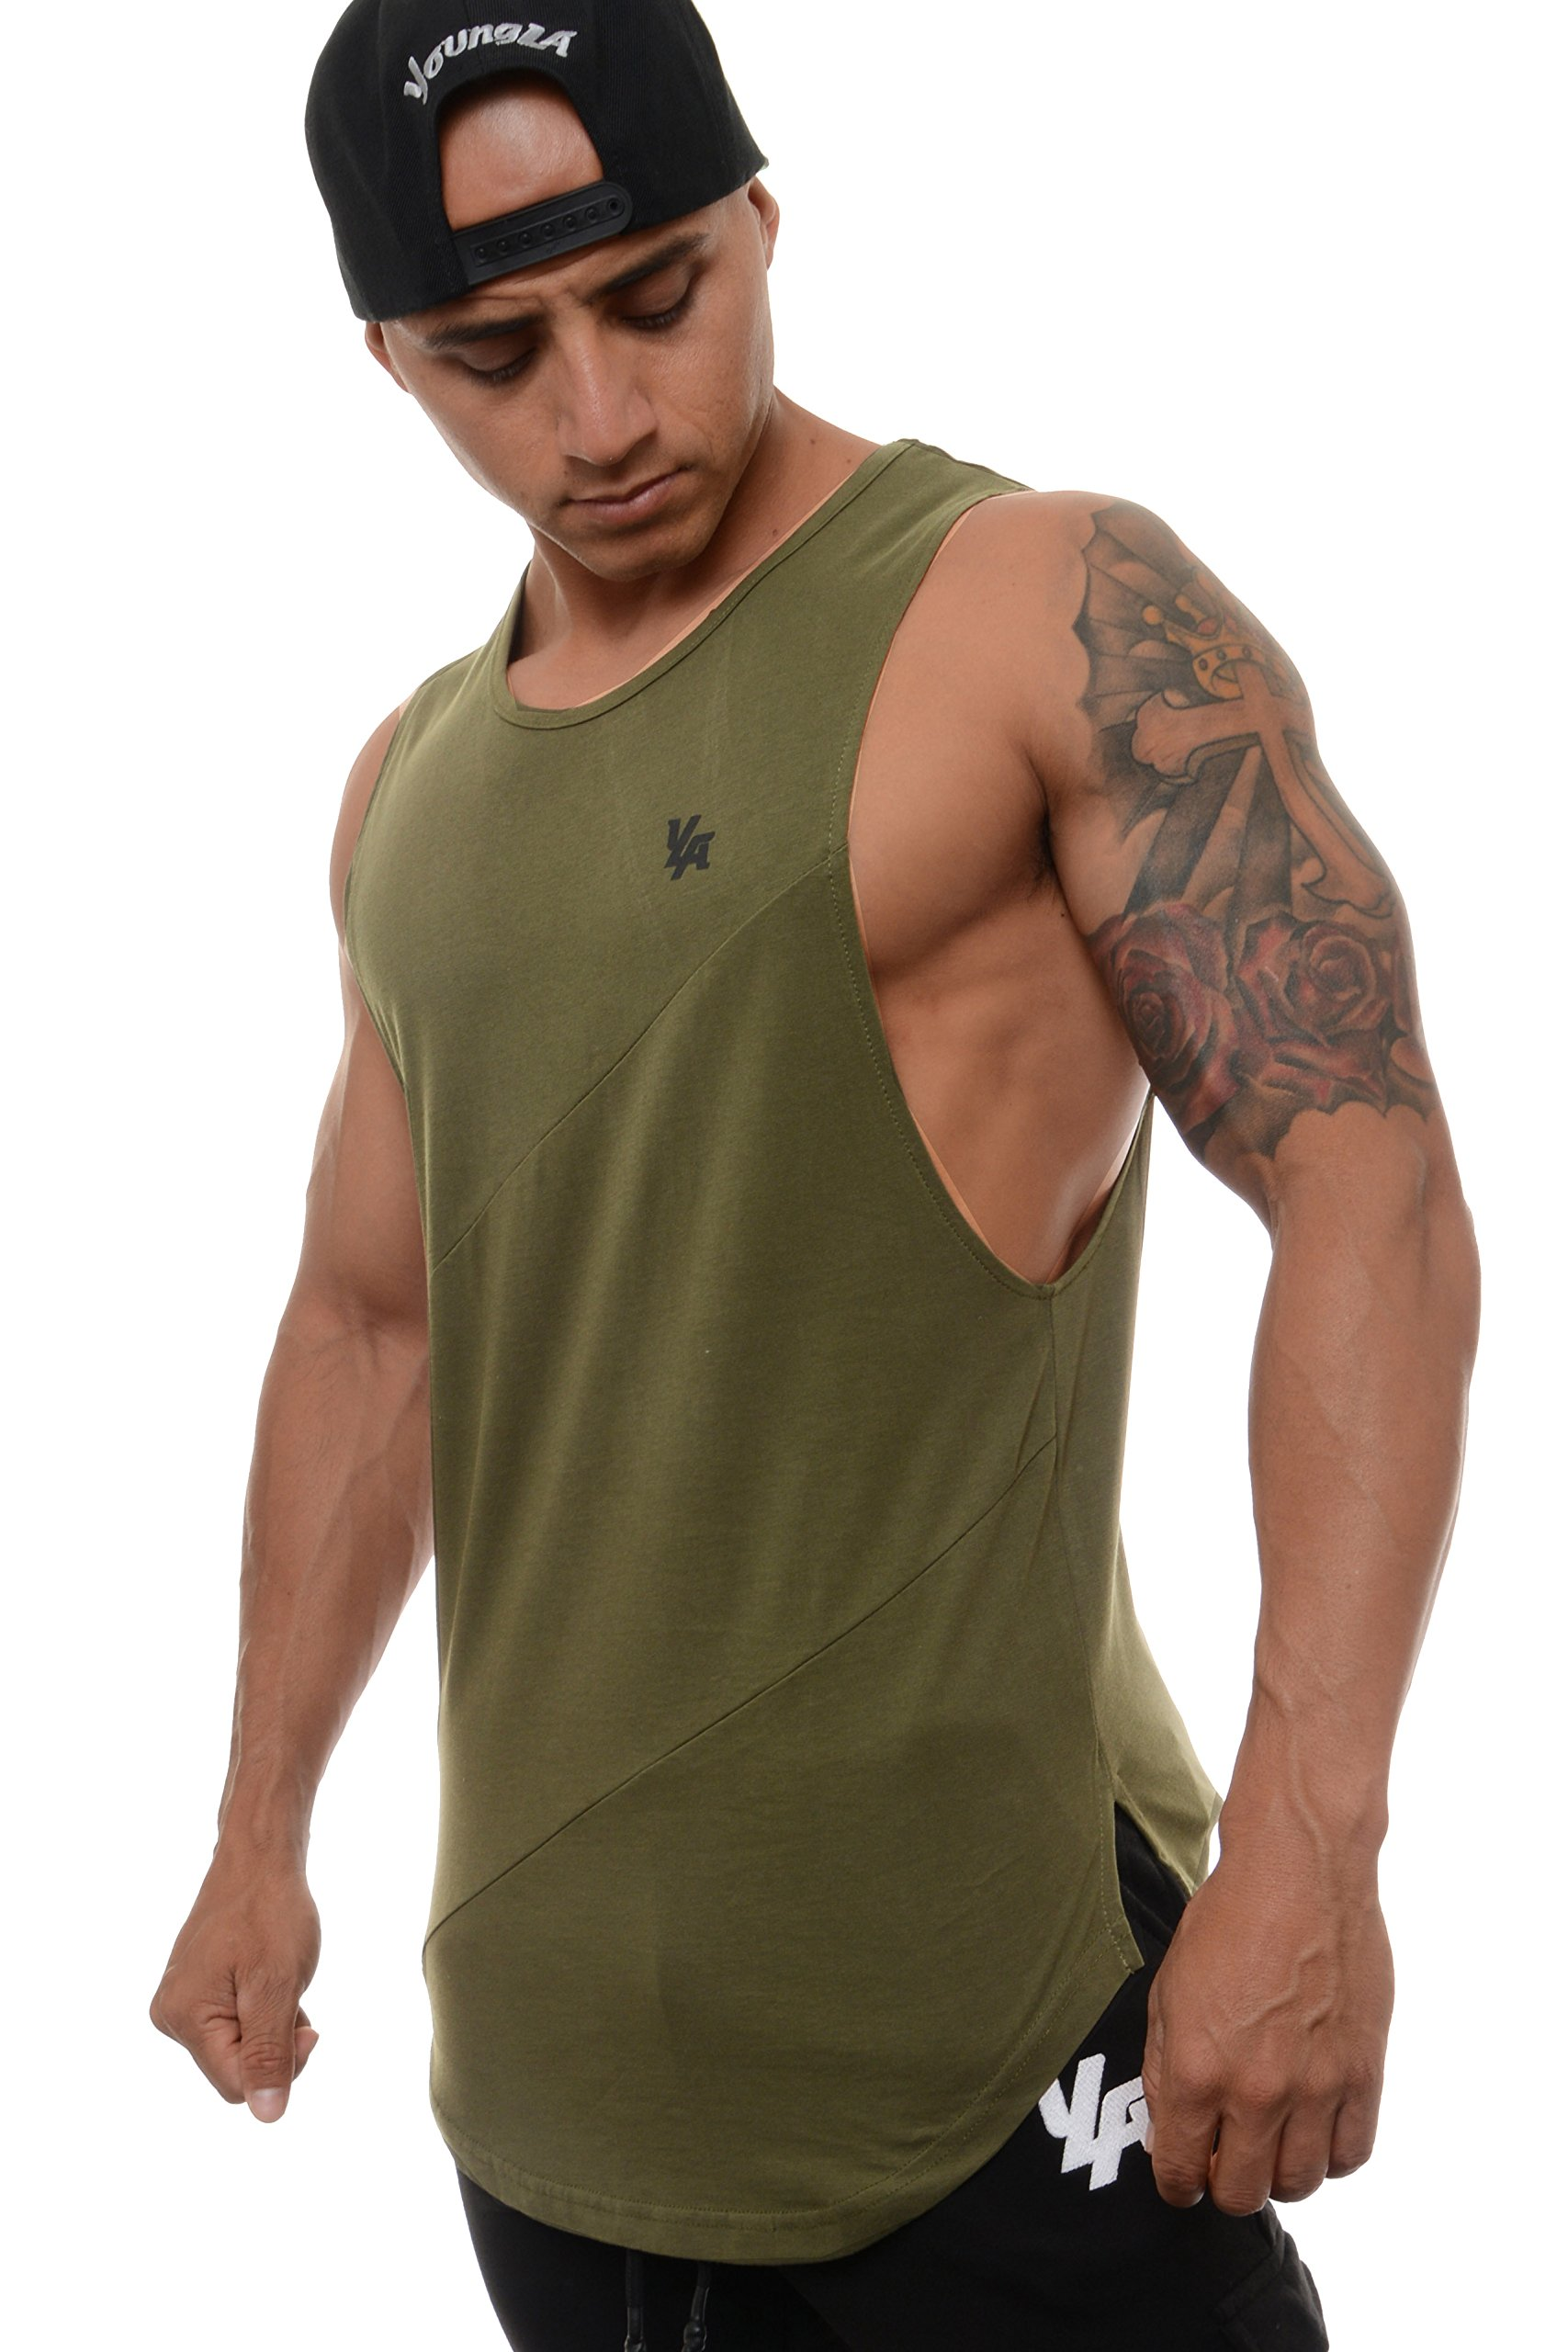 YoungLA Long Tank Tops for Men Muscle Shirt Bodybuilding Gym Athletic Training Sports Everyday Wear 306 Olive Small